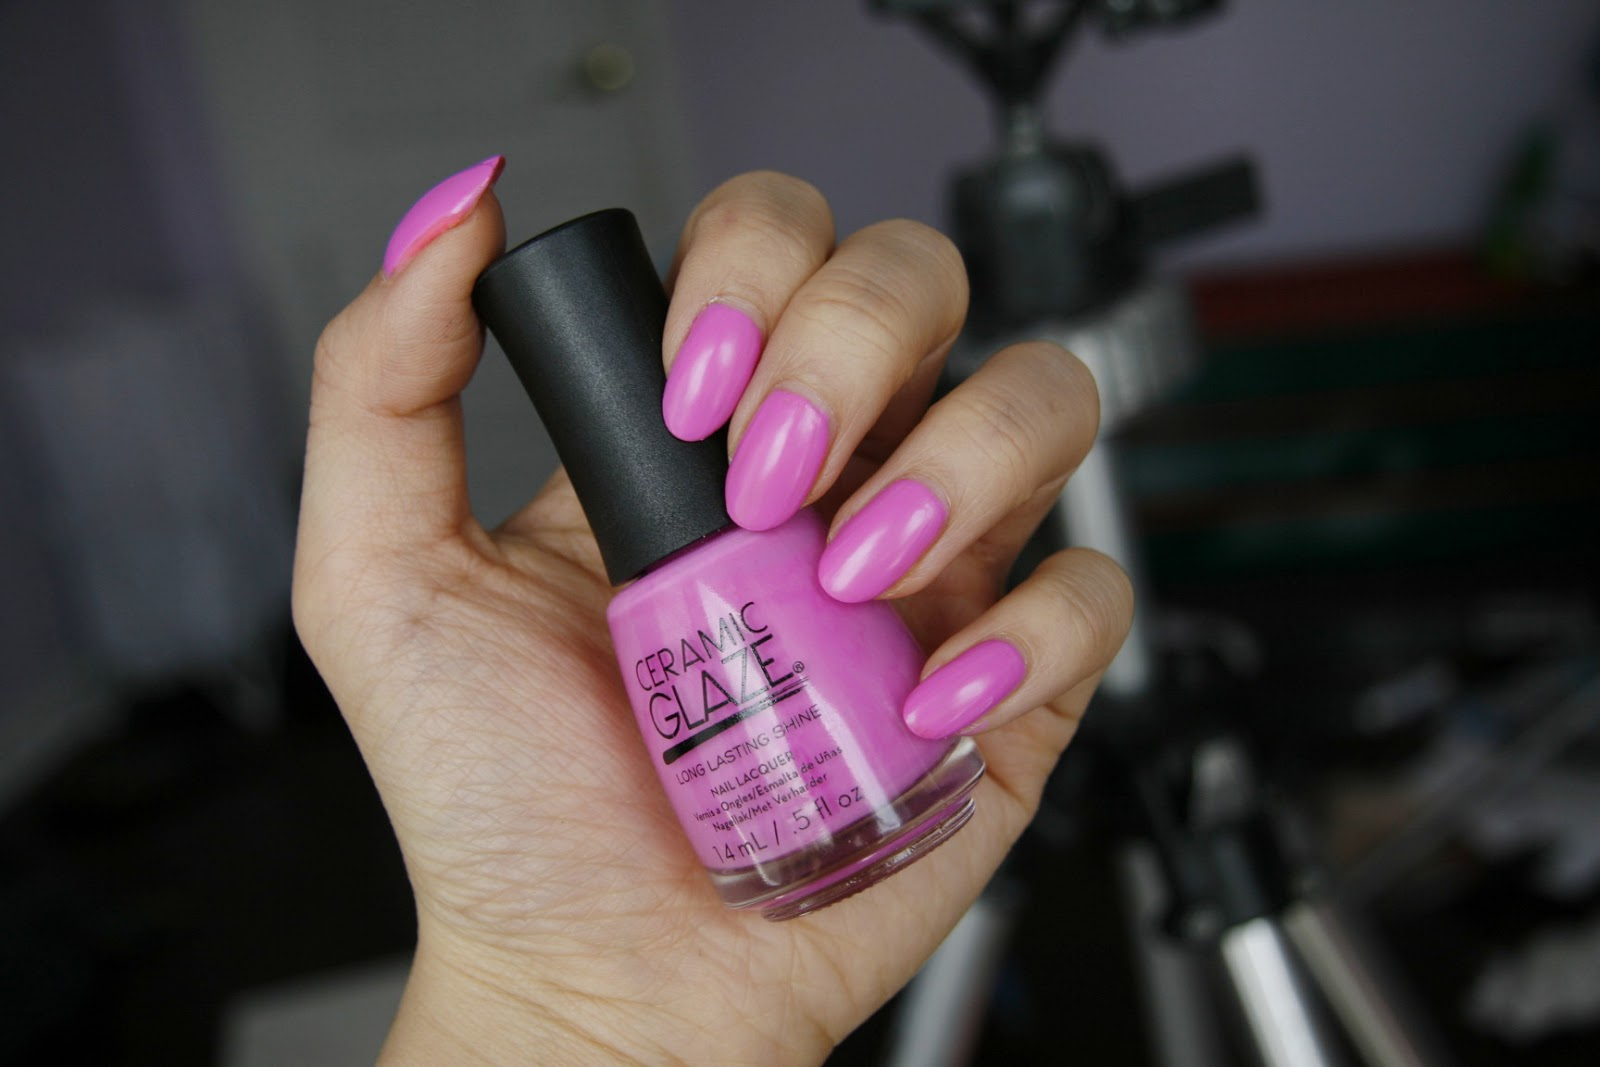 fun size beauty: Neon and Matte - Ceramic Glaze Nail Polish in Shell ...